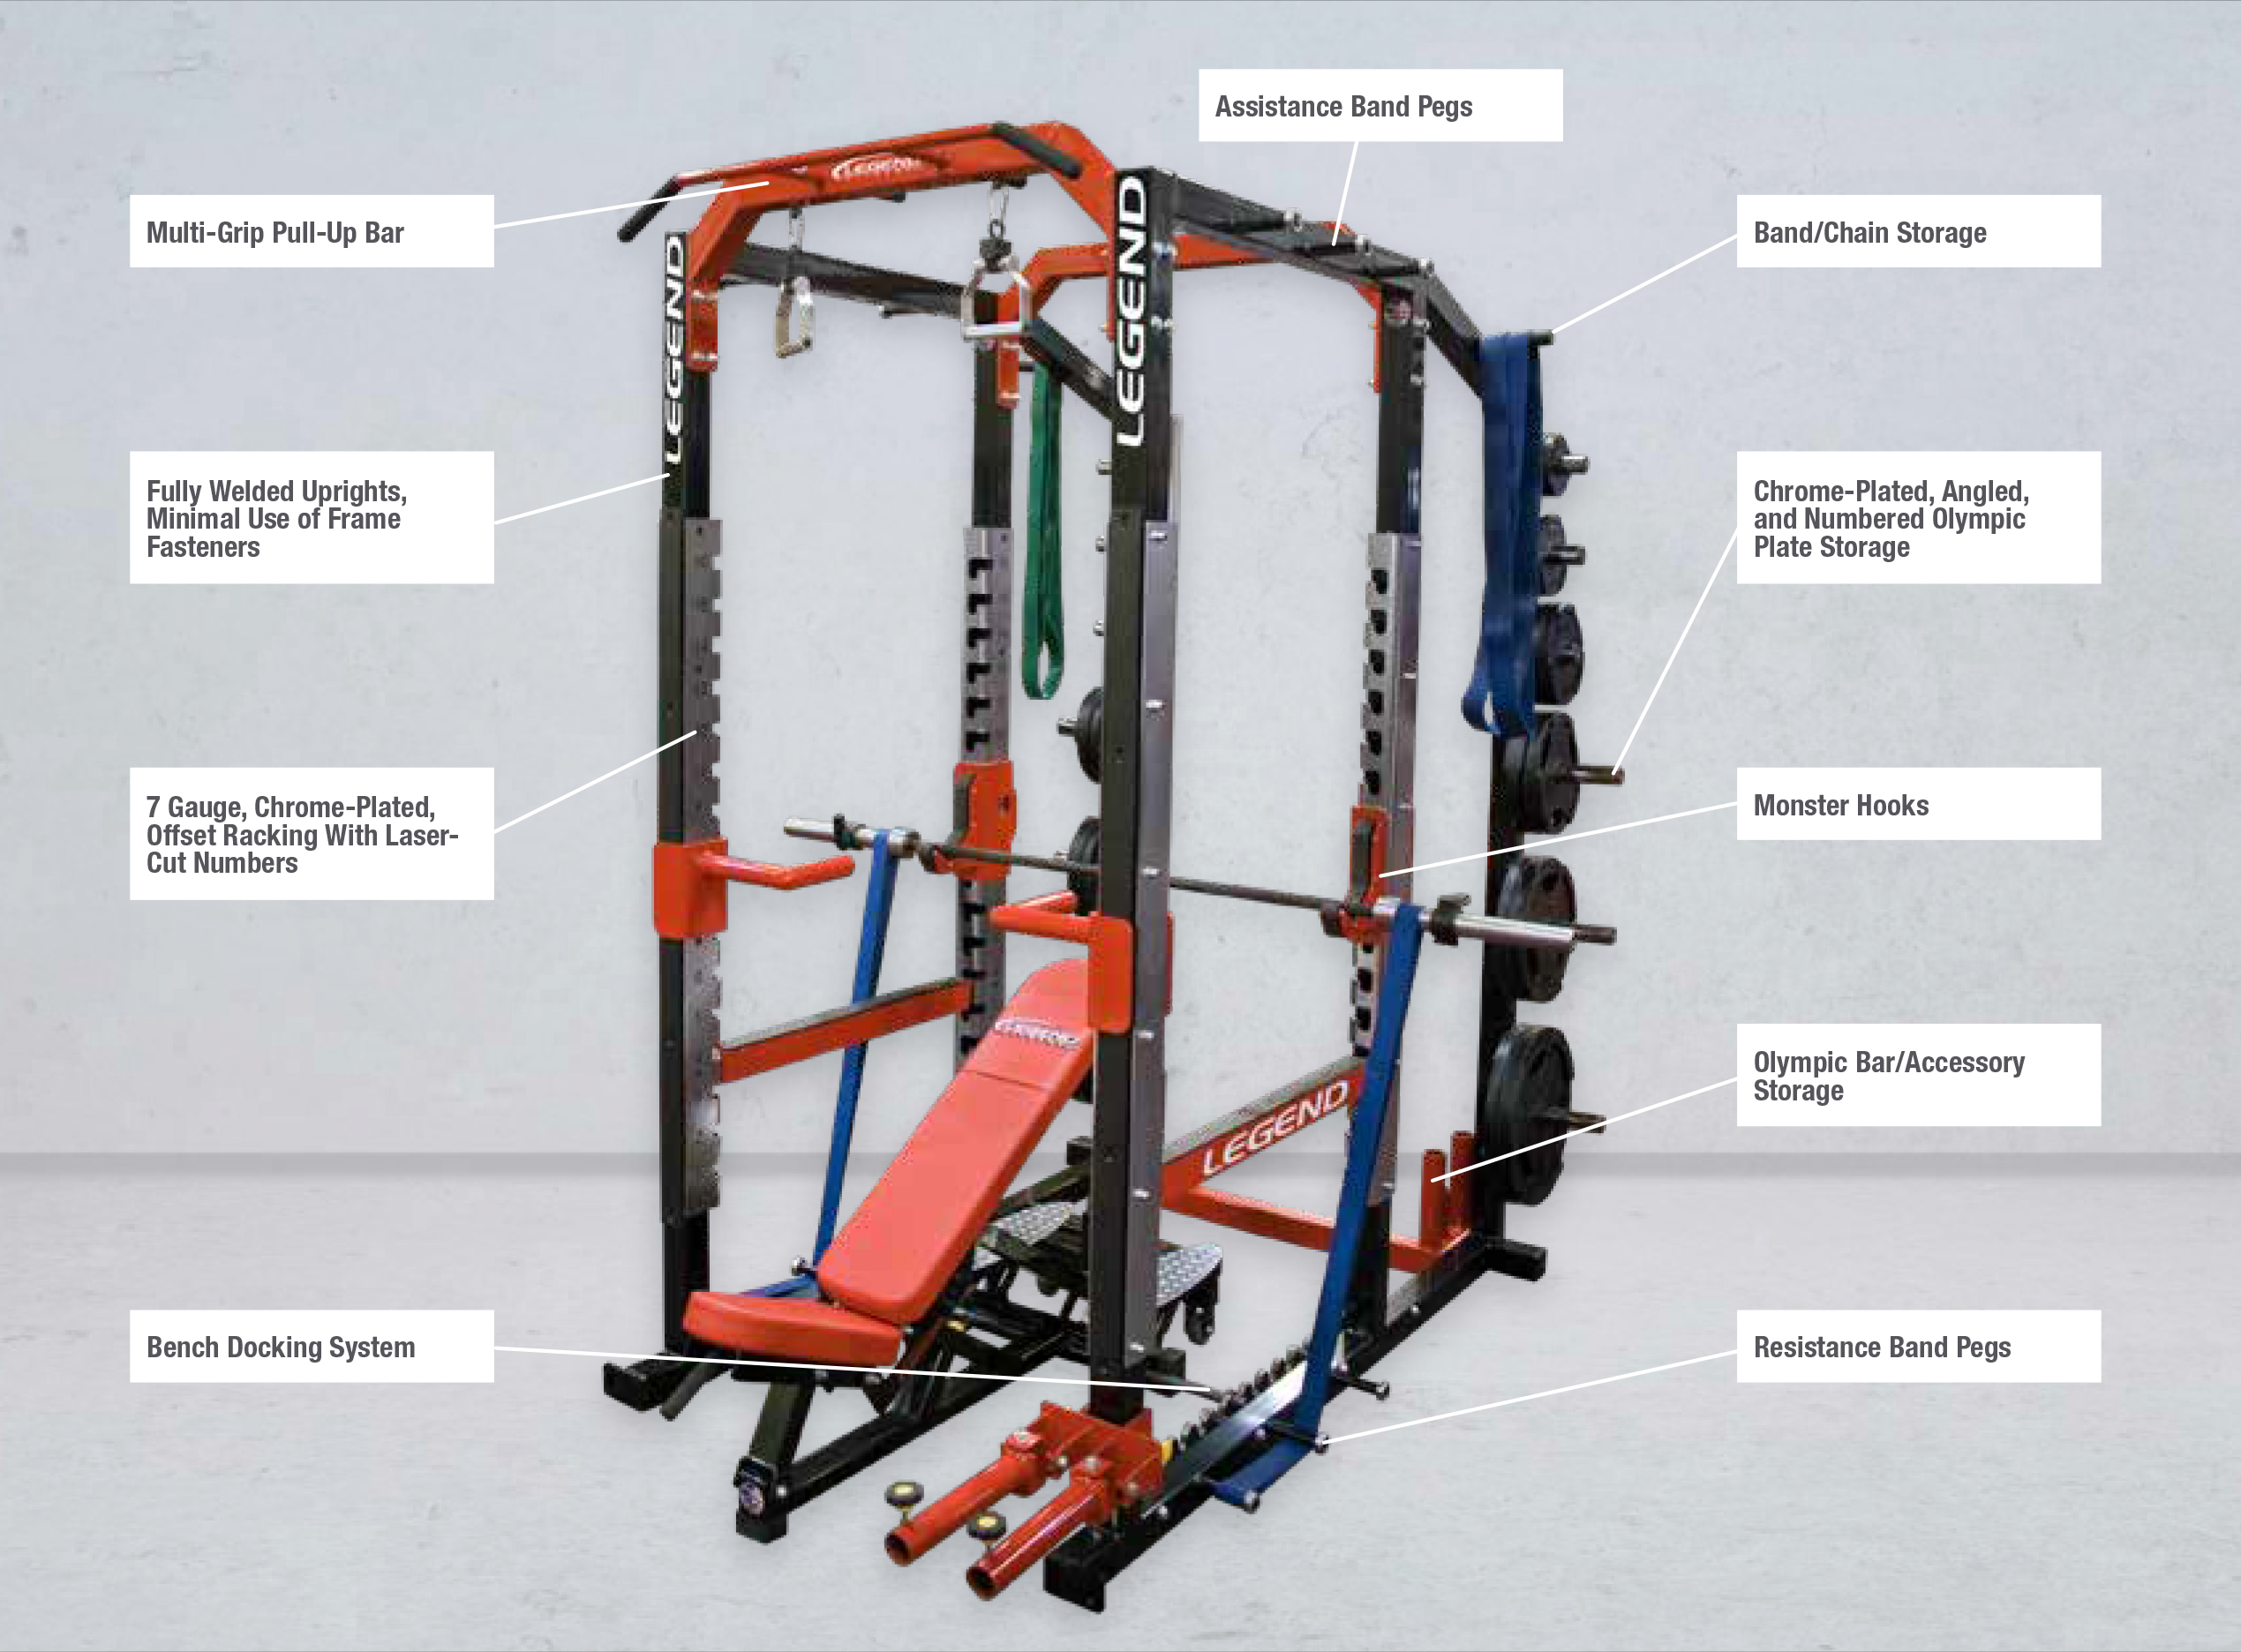 A Legend Fitness Pro Series cage with callout text blocks noting standard cage features, including assistance and resistance band pegs, band/chain storage, chrome-plated, angled and numbered Olympic plate storage, Monster Hooks, Olympic bar/accessory storage, bench docking system, seven gauge, chrome-plated offset racking with laser-cut numbers, fully welded uprights with minimal use of frame fasteners, and a multi-grip pull-up bar.